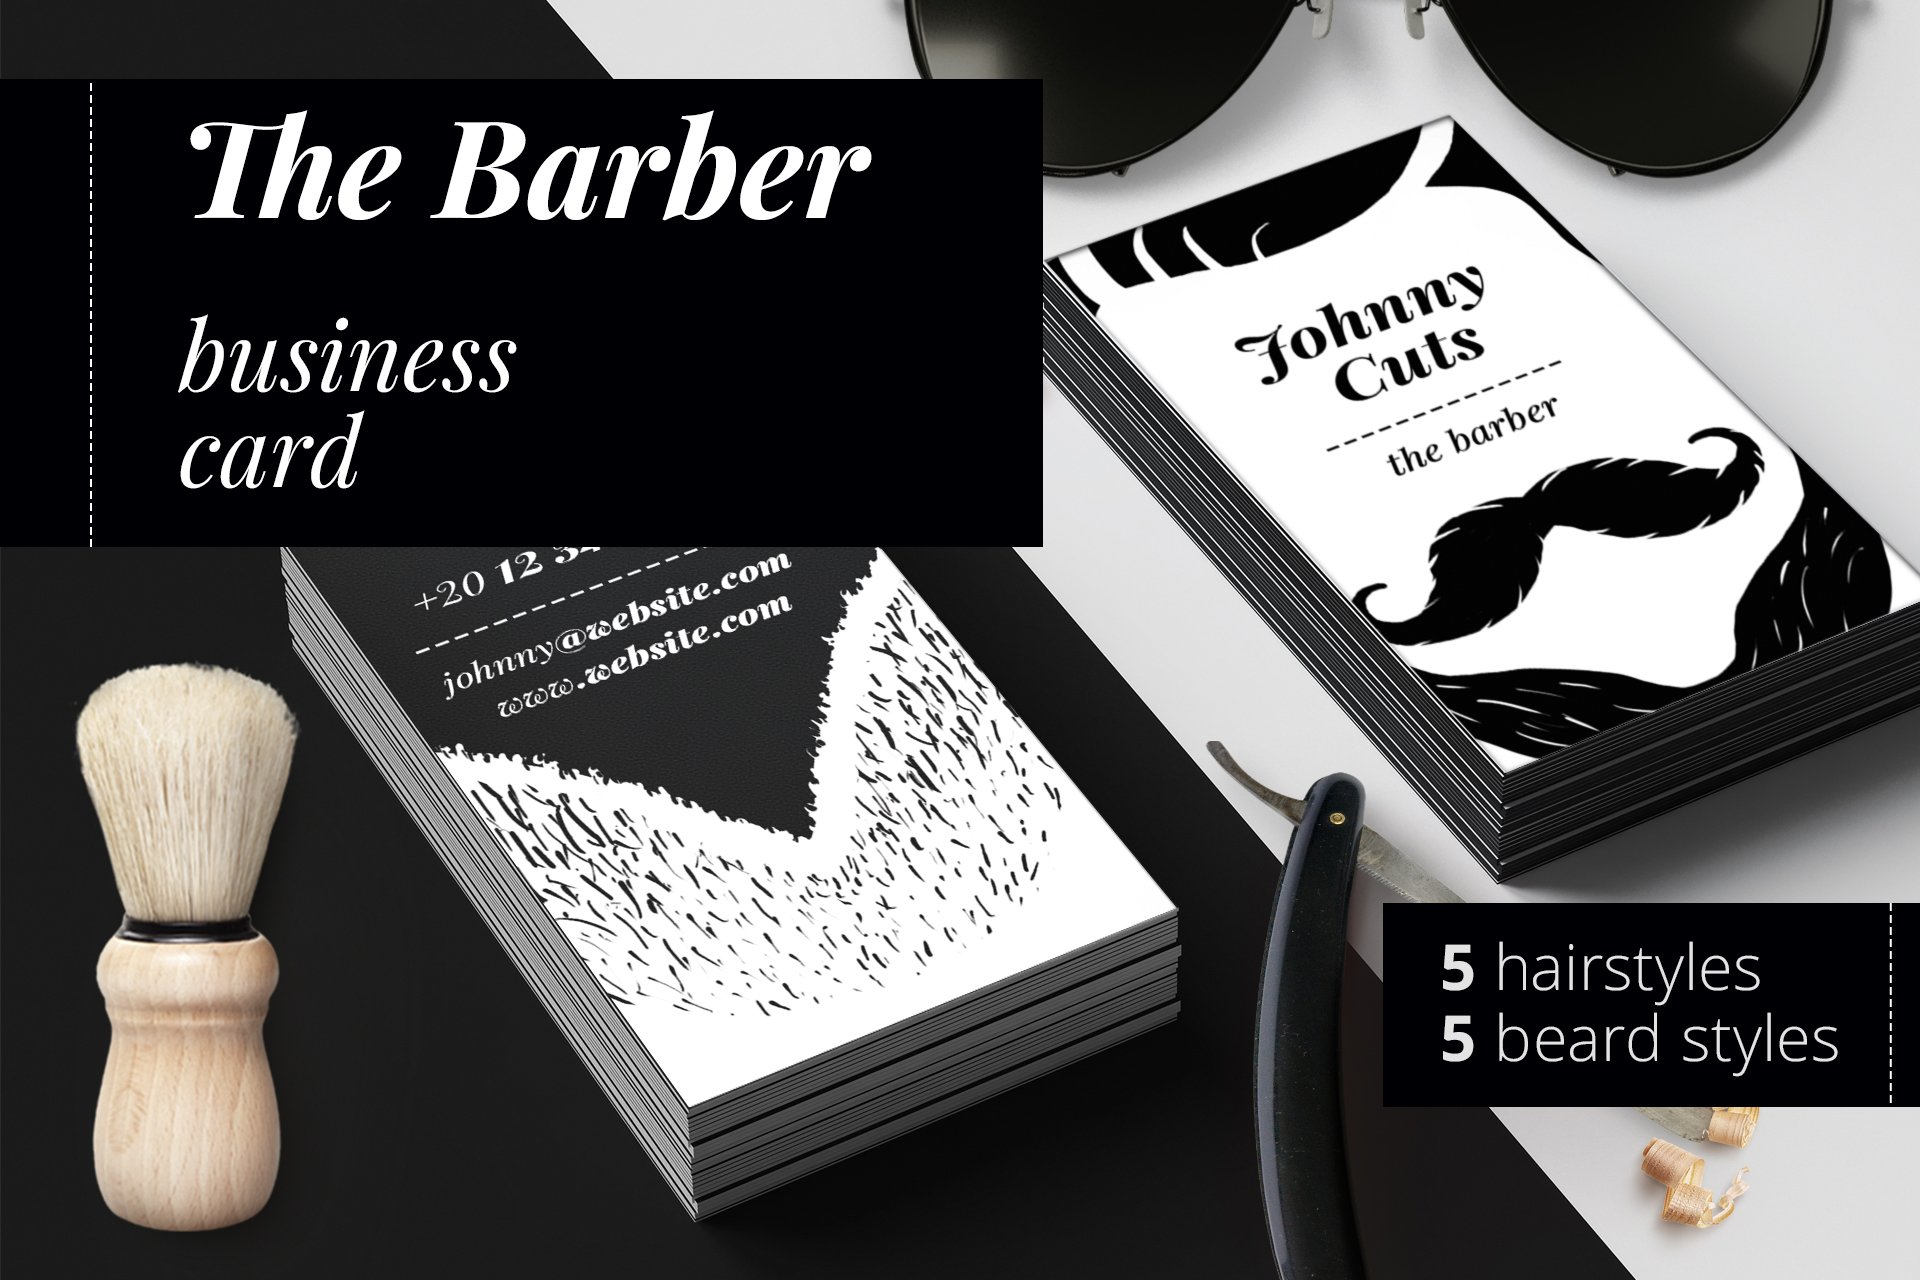 Salon Business Card Template ~ Business Card Templates ~ Creative Market